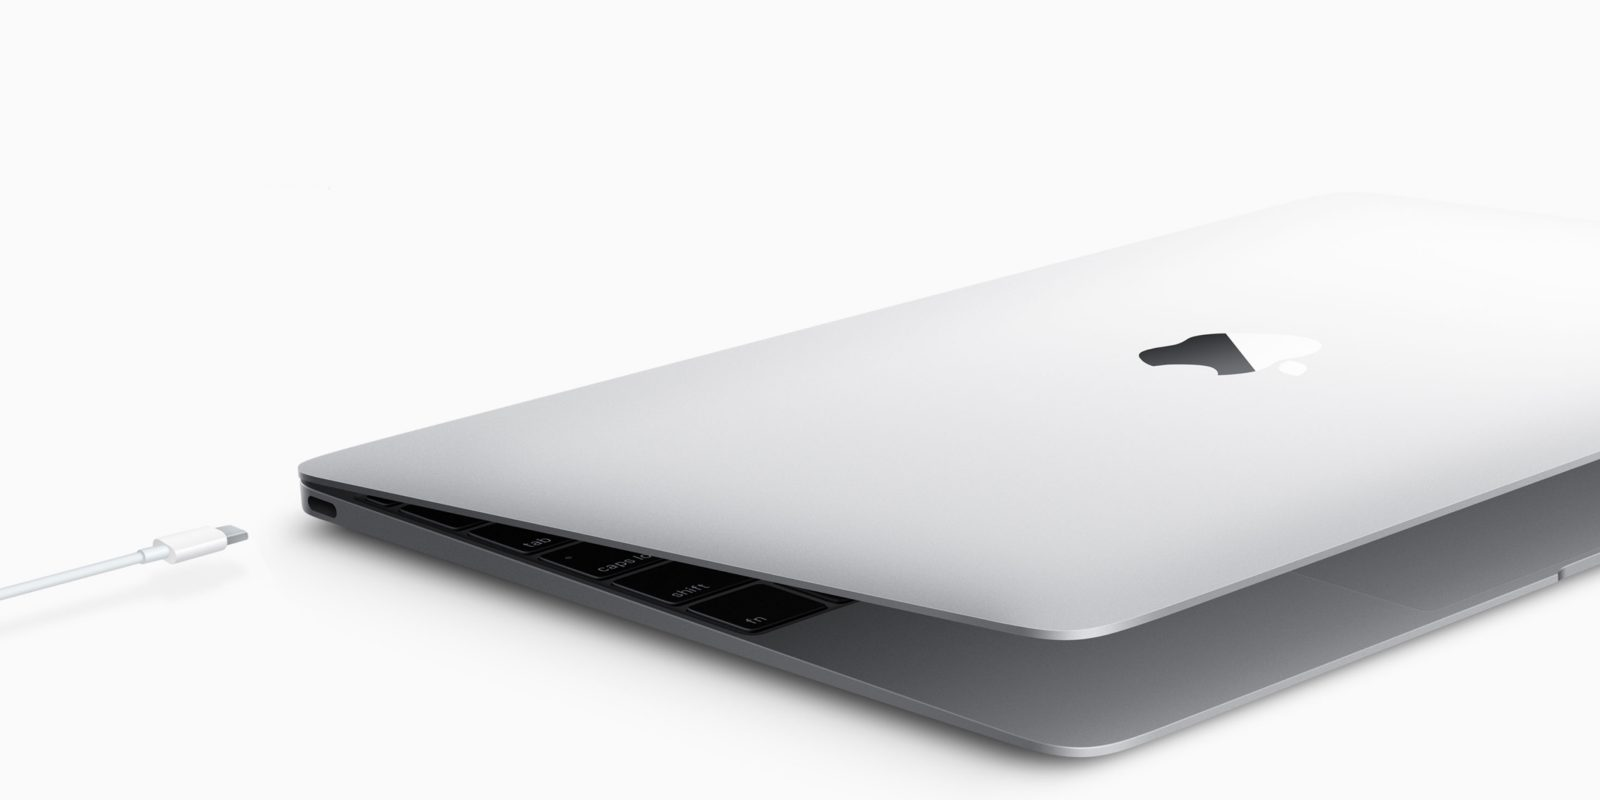 new product e96aa c552b Apple event day discounts continue as 12-inch MacBook is marked down to   830 (Cert. Refurb)